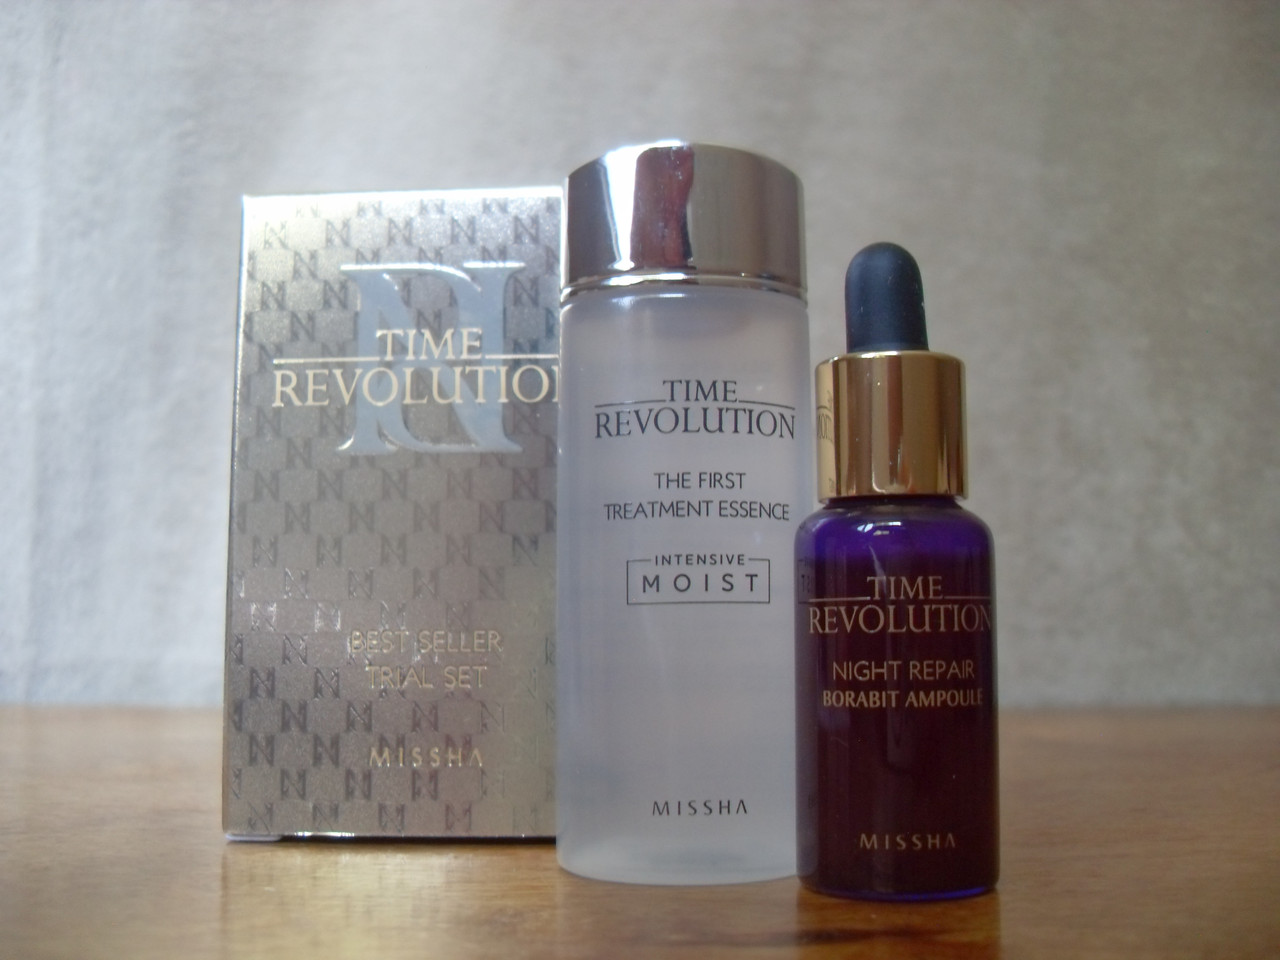 Missha Time Revolution Night Repair New Science Activator Ampoule The First Treatment Essence Intensive Moist